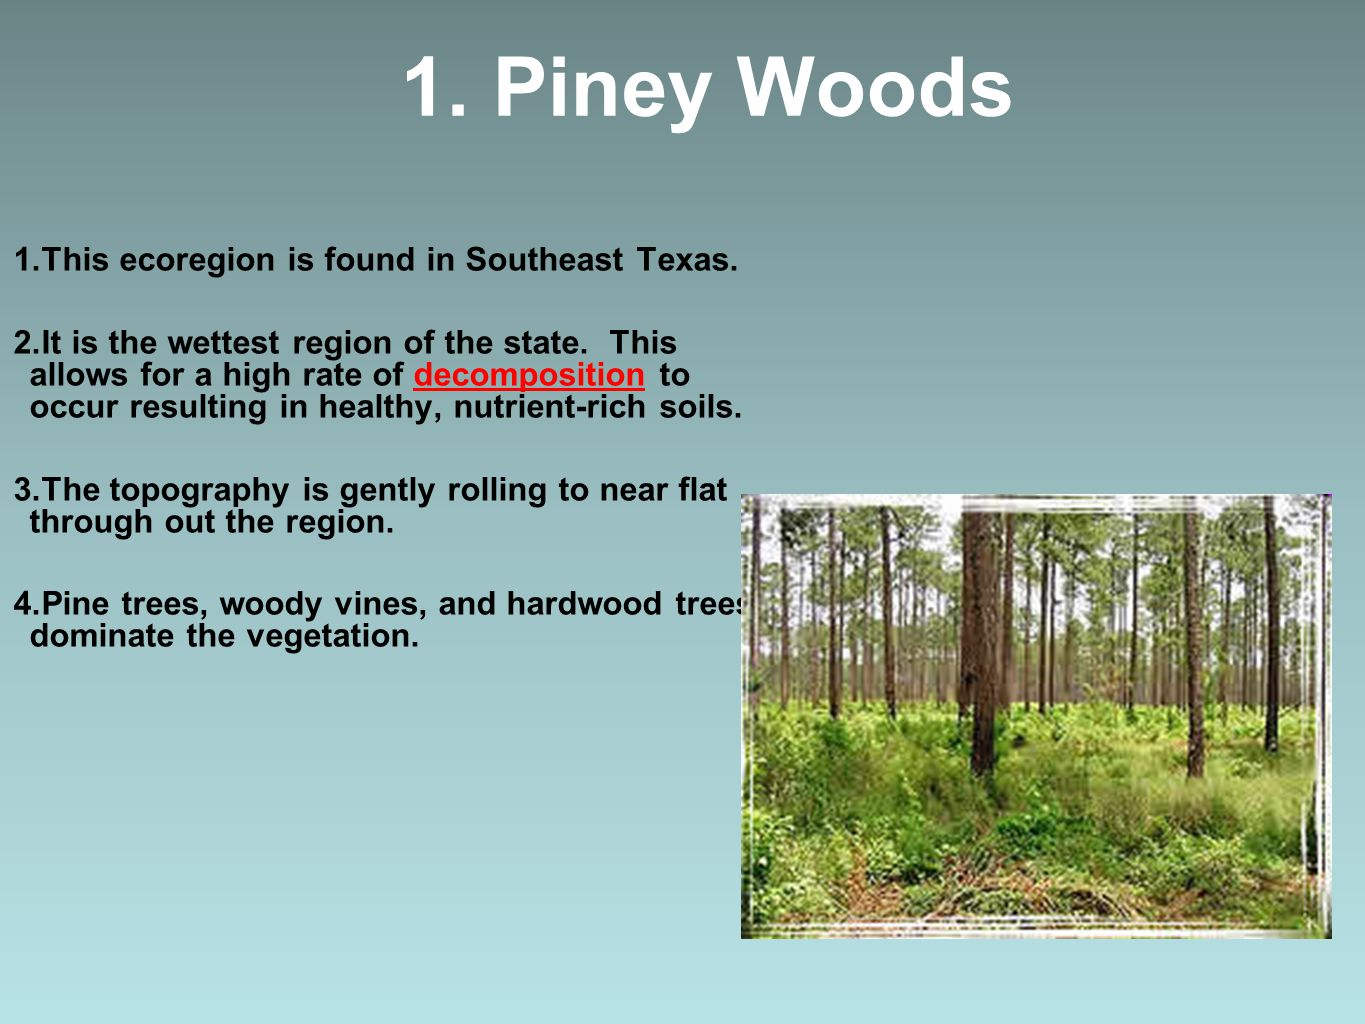 1. Piney Woods This ecoregion is found in Southeast Texas.